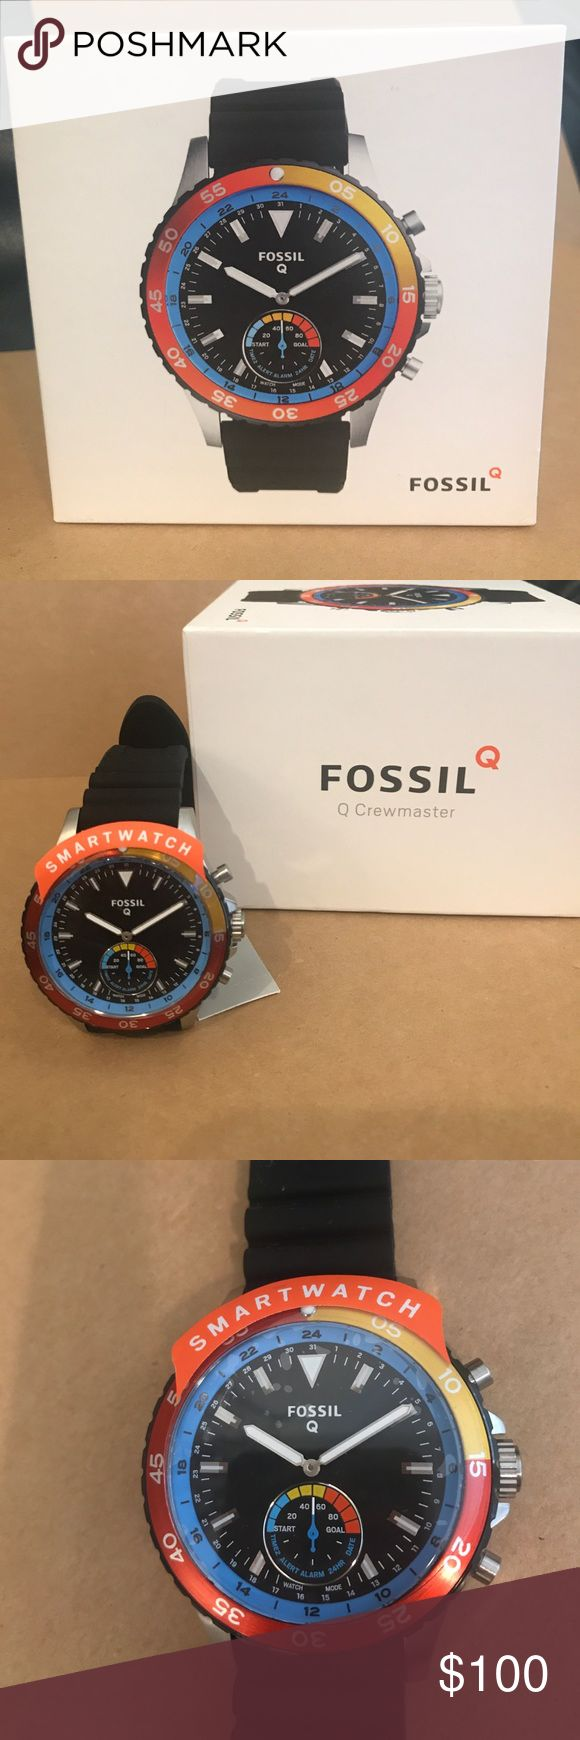 BRAND NEW Fossil Hybrid Smartwatch! Q Crewmaster Black Silicone.  Uses Bluetooth technology to receive smartphone notifications. Track steps, calories and sleep. Bottom button takes photos, controls music or find your phone. Battery life up to 6 months. Fastened in an accordion black silicone strap.  Interchangeable strap. Compatible with android and iPhone. Brand new with tag and box. Never used. Fossil Accessories Watches